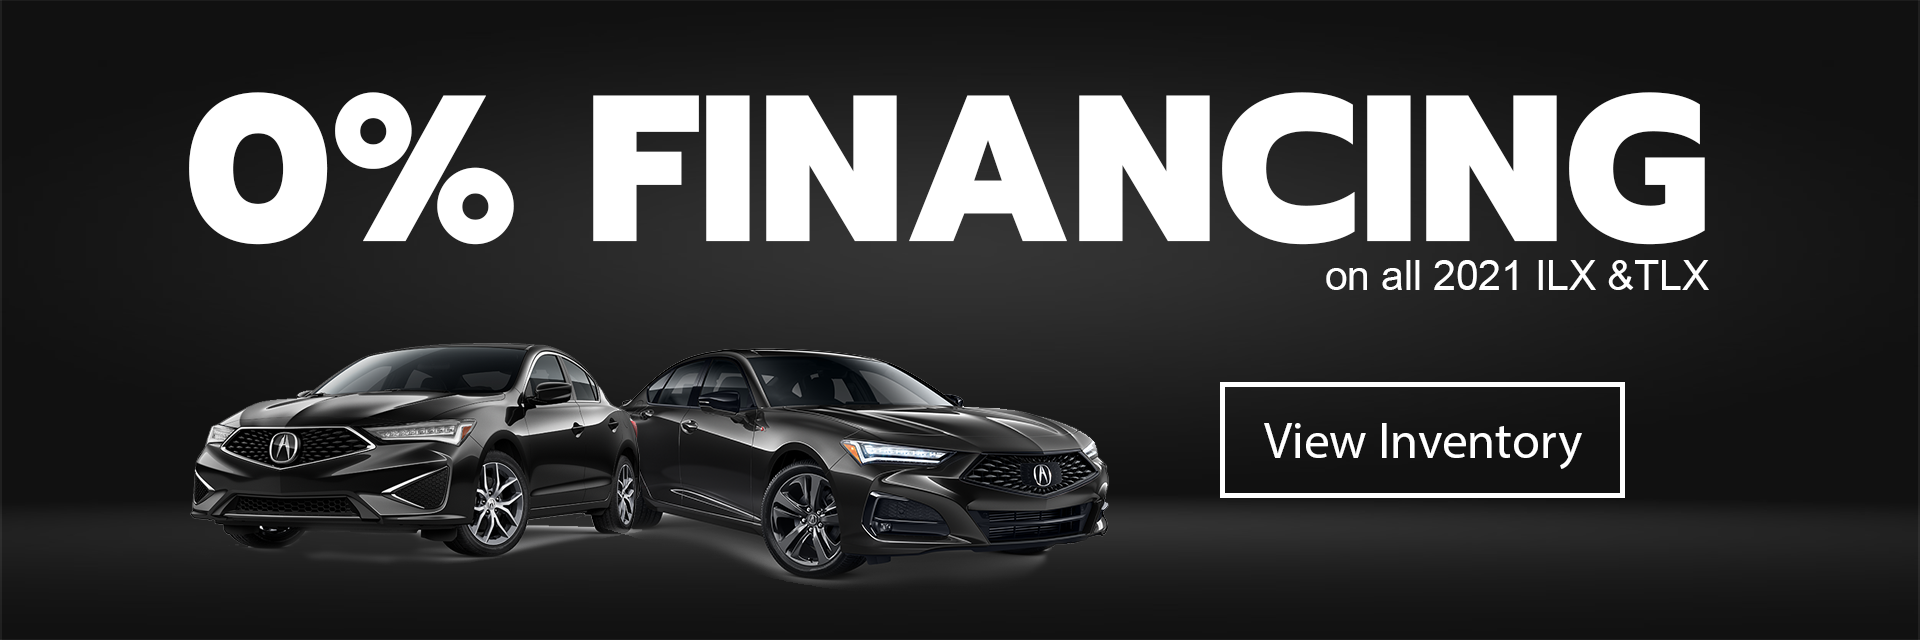 )% Financing St Louis Acura Dealer Offers